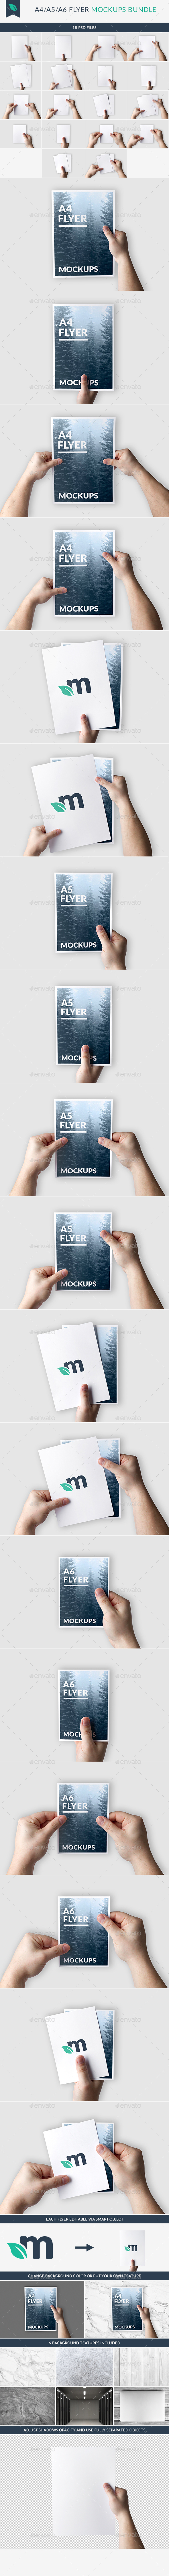 A4/A5/A6 Flyer Mockups Bundle - Flyers Print